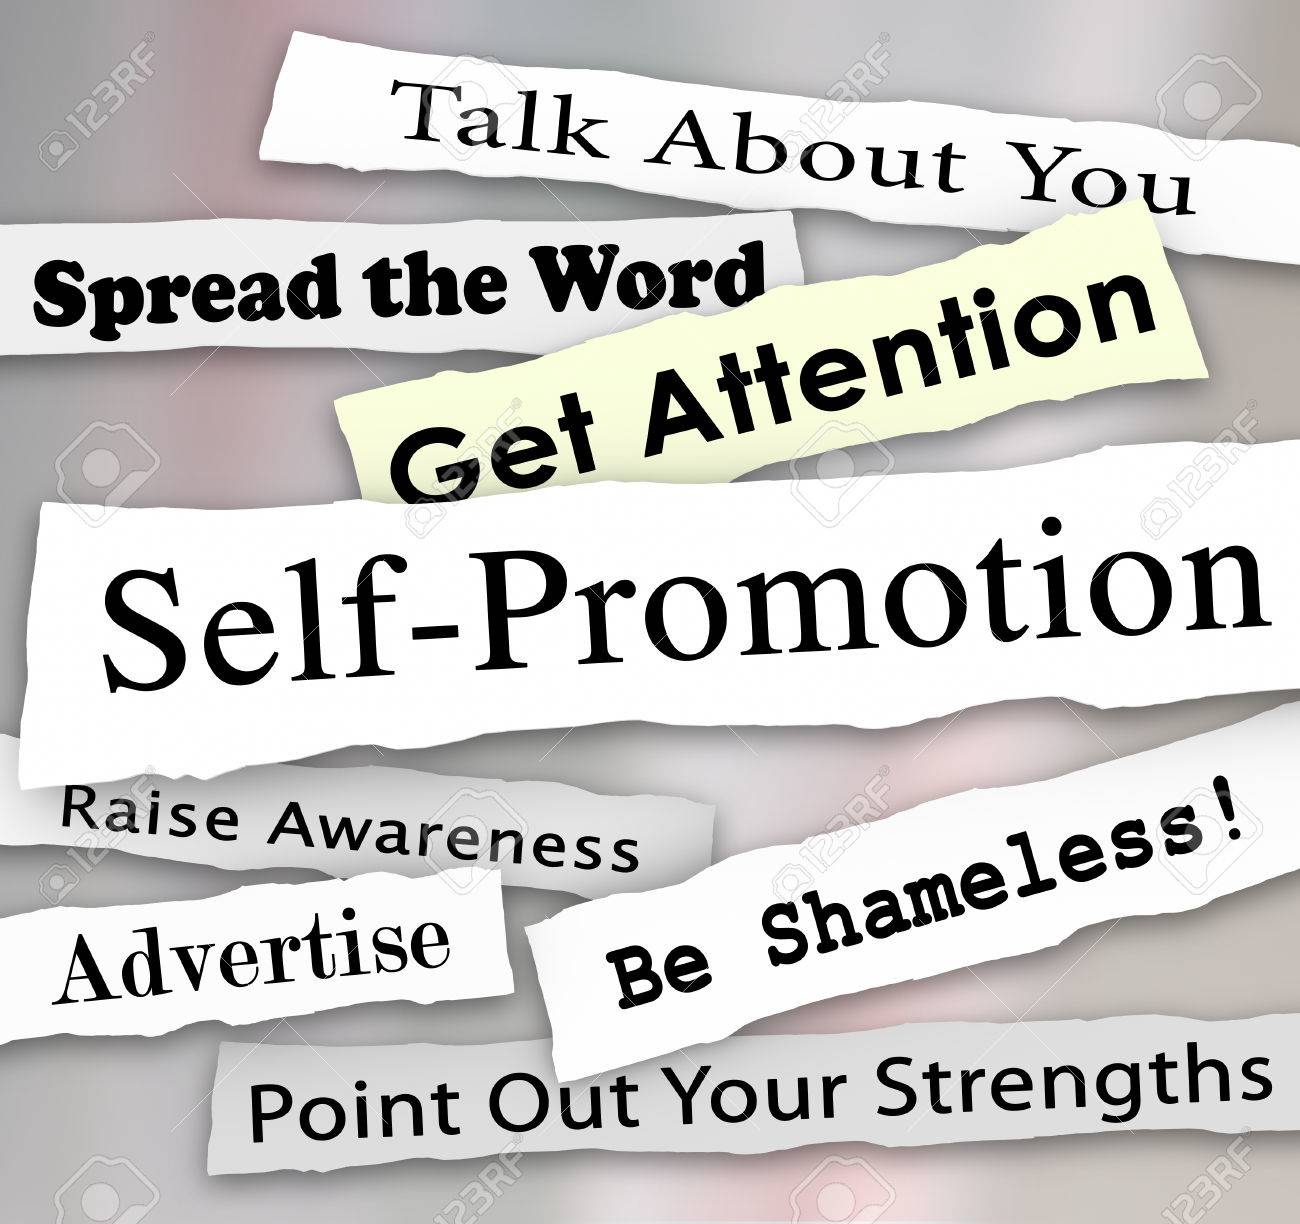 self promotion words and phrases in torn or ripped newspaper self promotion words and phrases in torn or ripped newspaper headlines to illustrate getting marketing